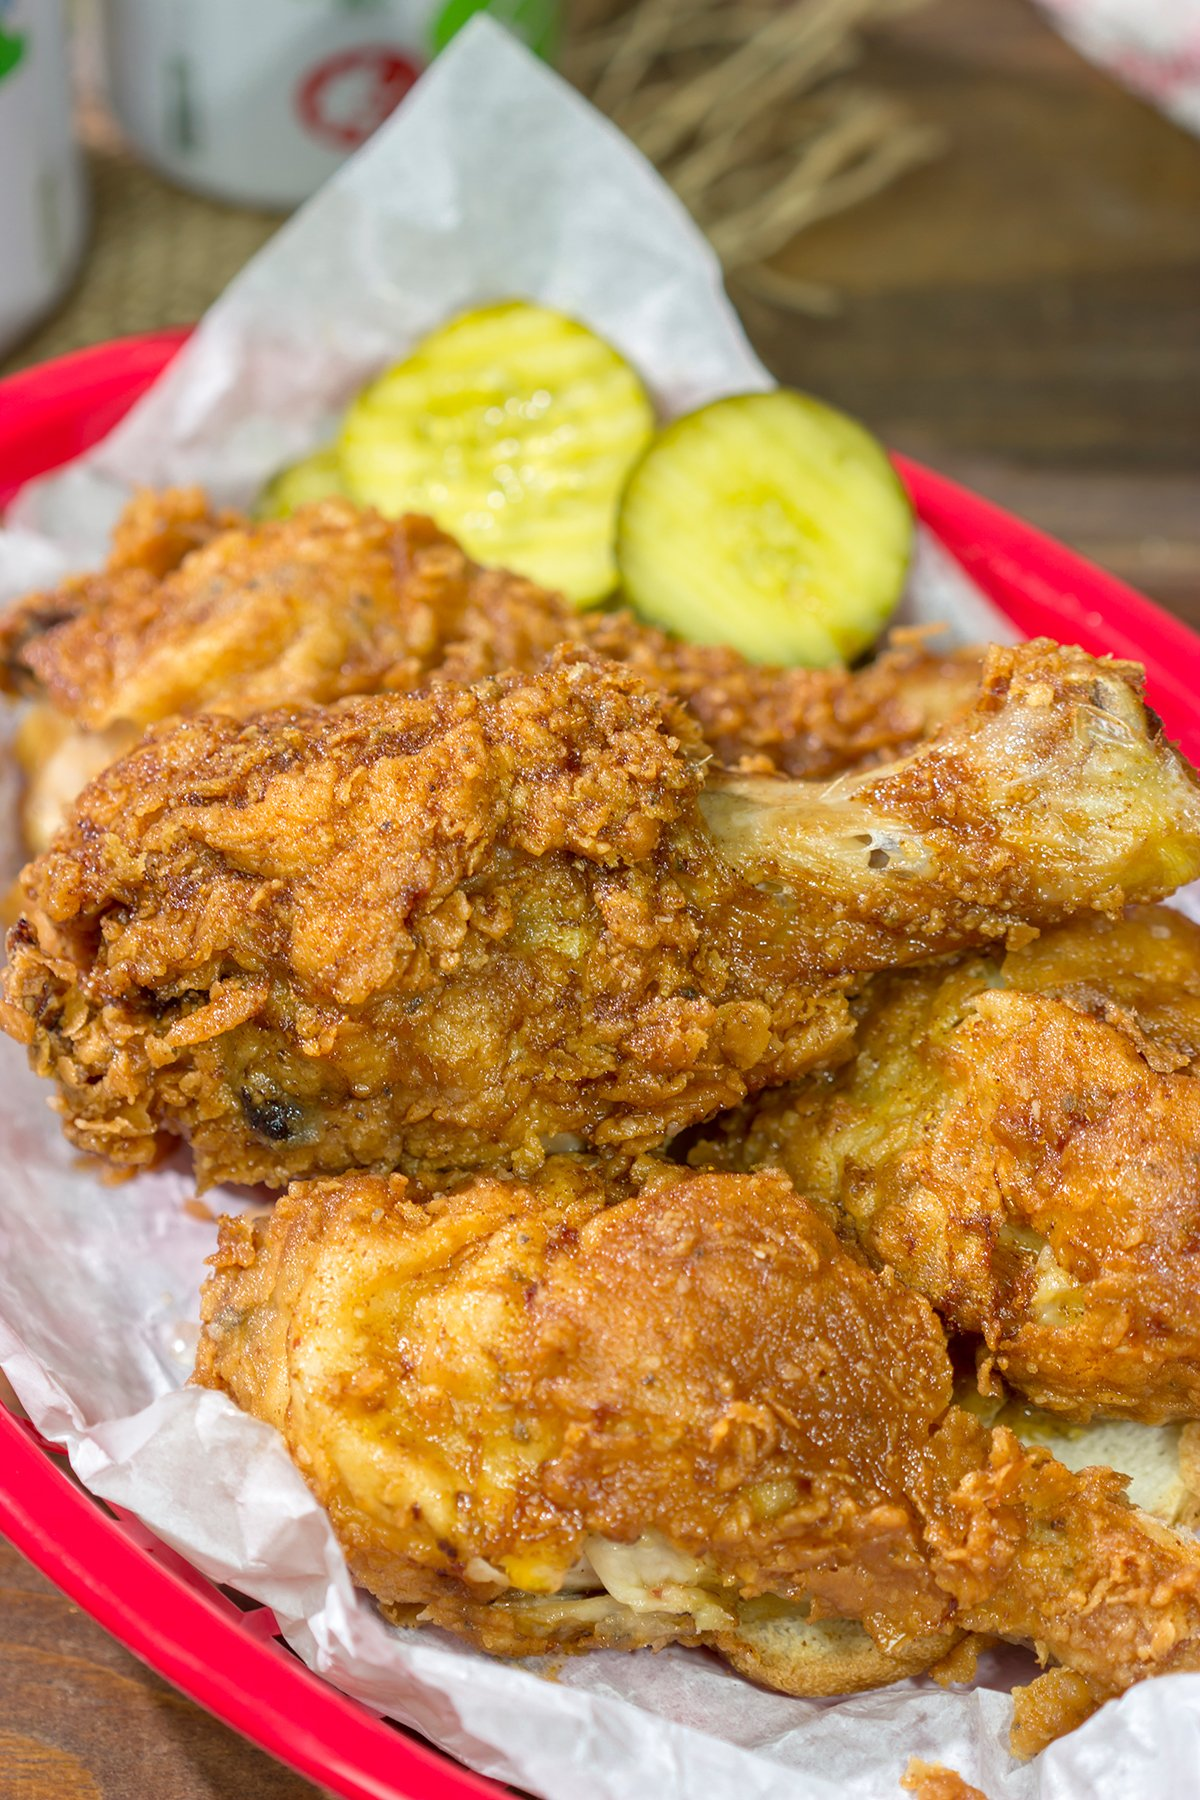 Nashville Hot Chicken is a mainstay menu item in the Music City. Think delicious Southern fried chicken...with a spicy kick!